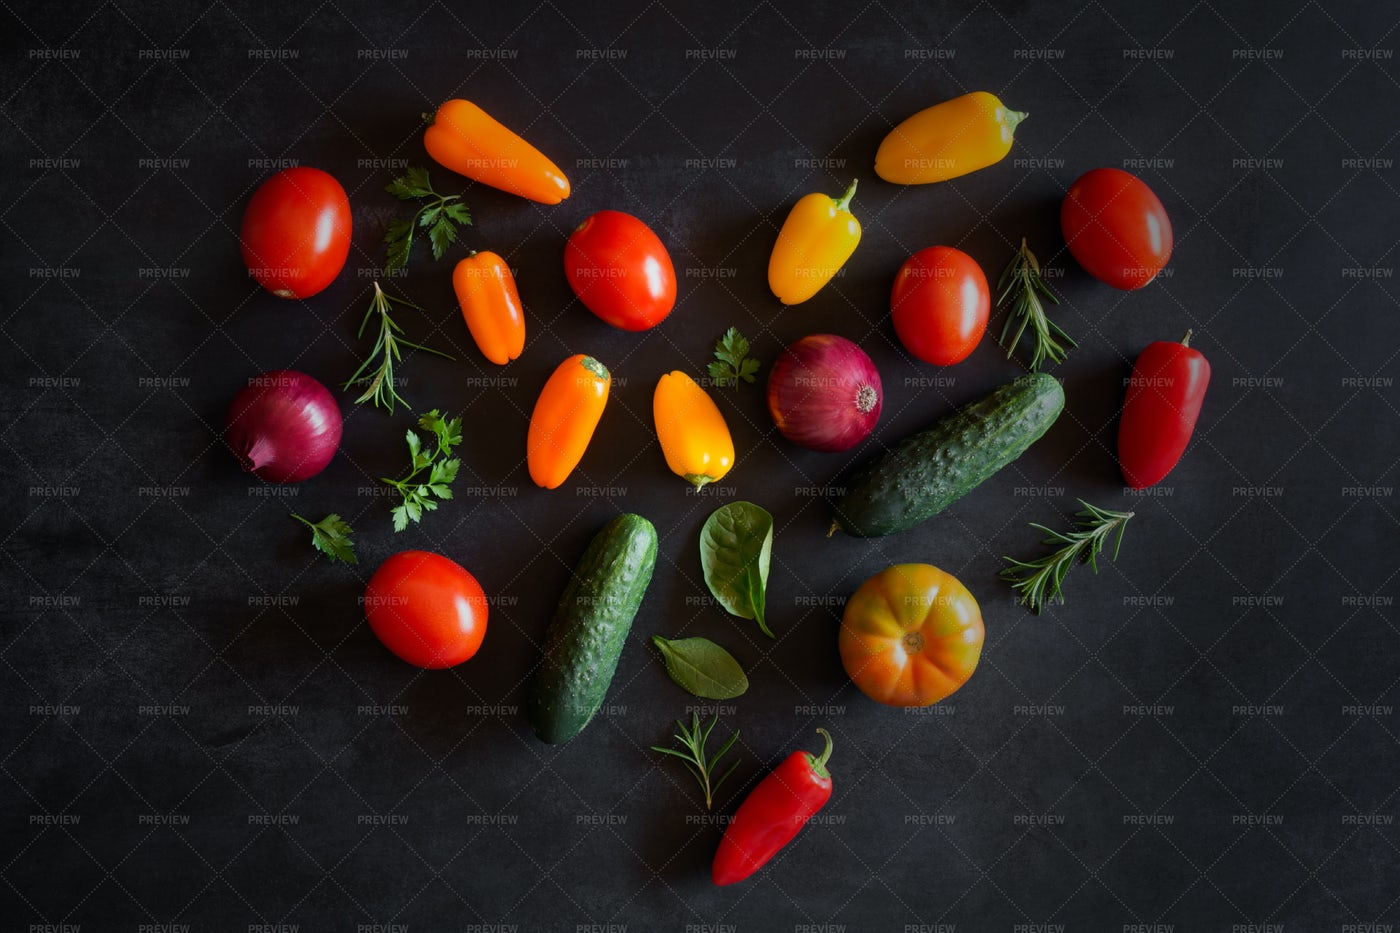 Vegetables In A Heart Shape: Stock Photos